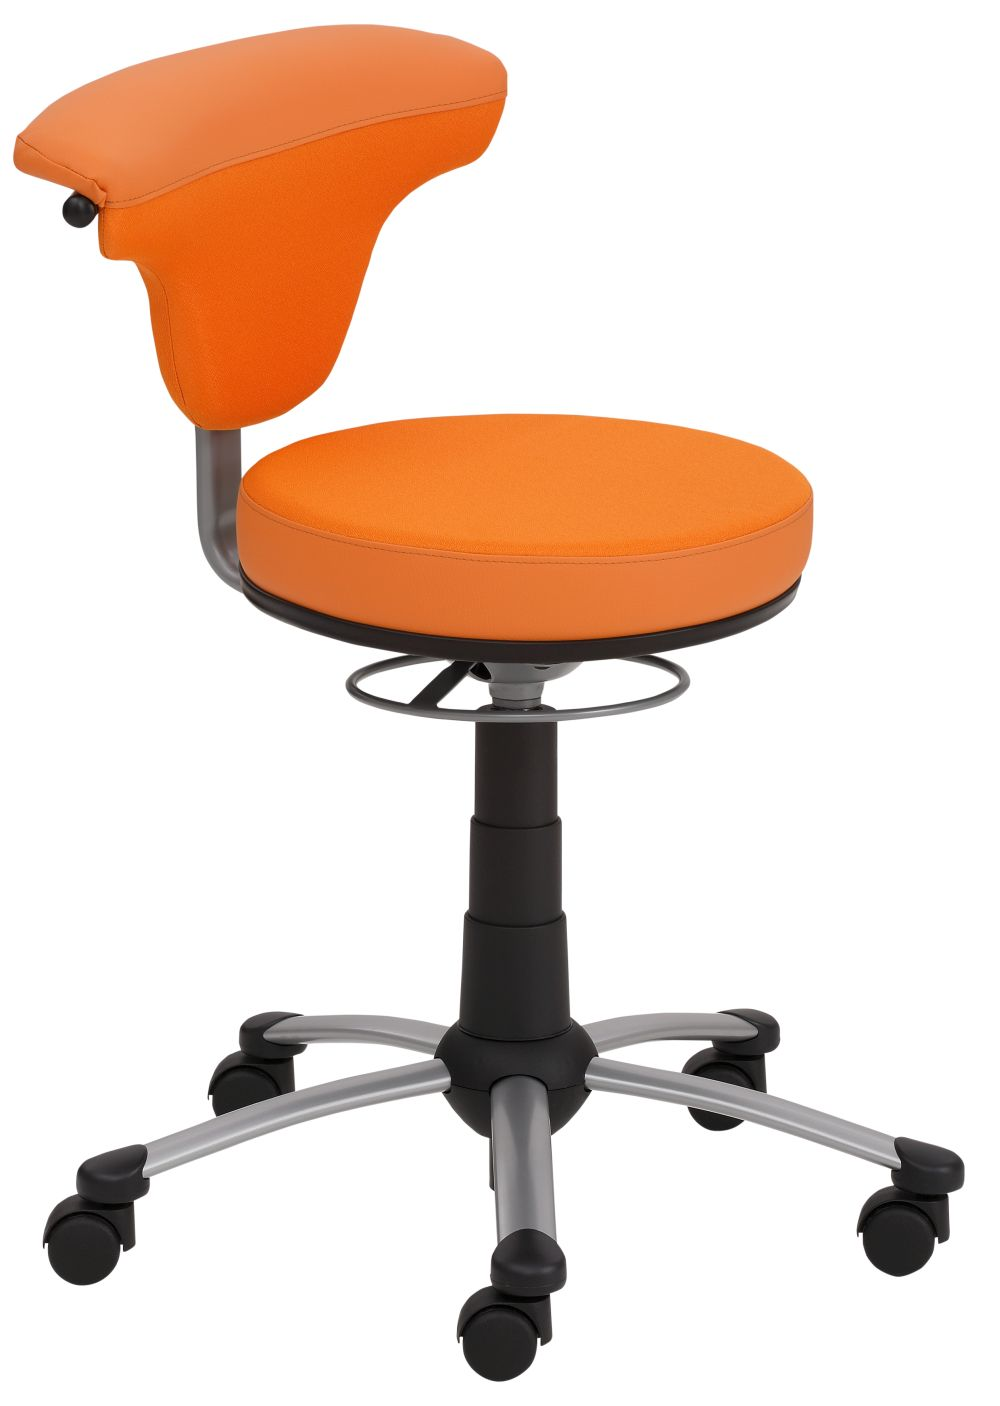 mayer | Funktionsdrehstuhl myTORRO SIT | Orange